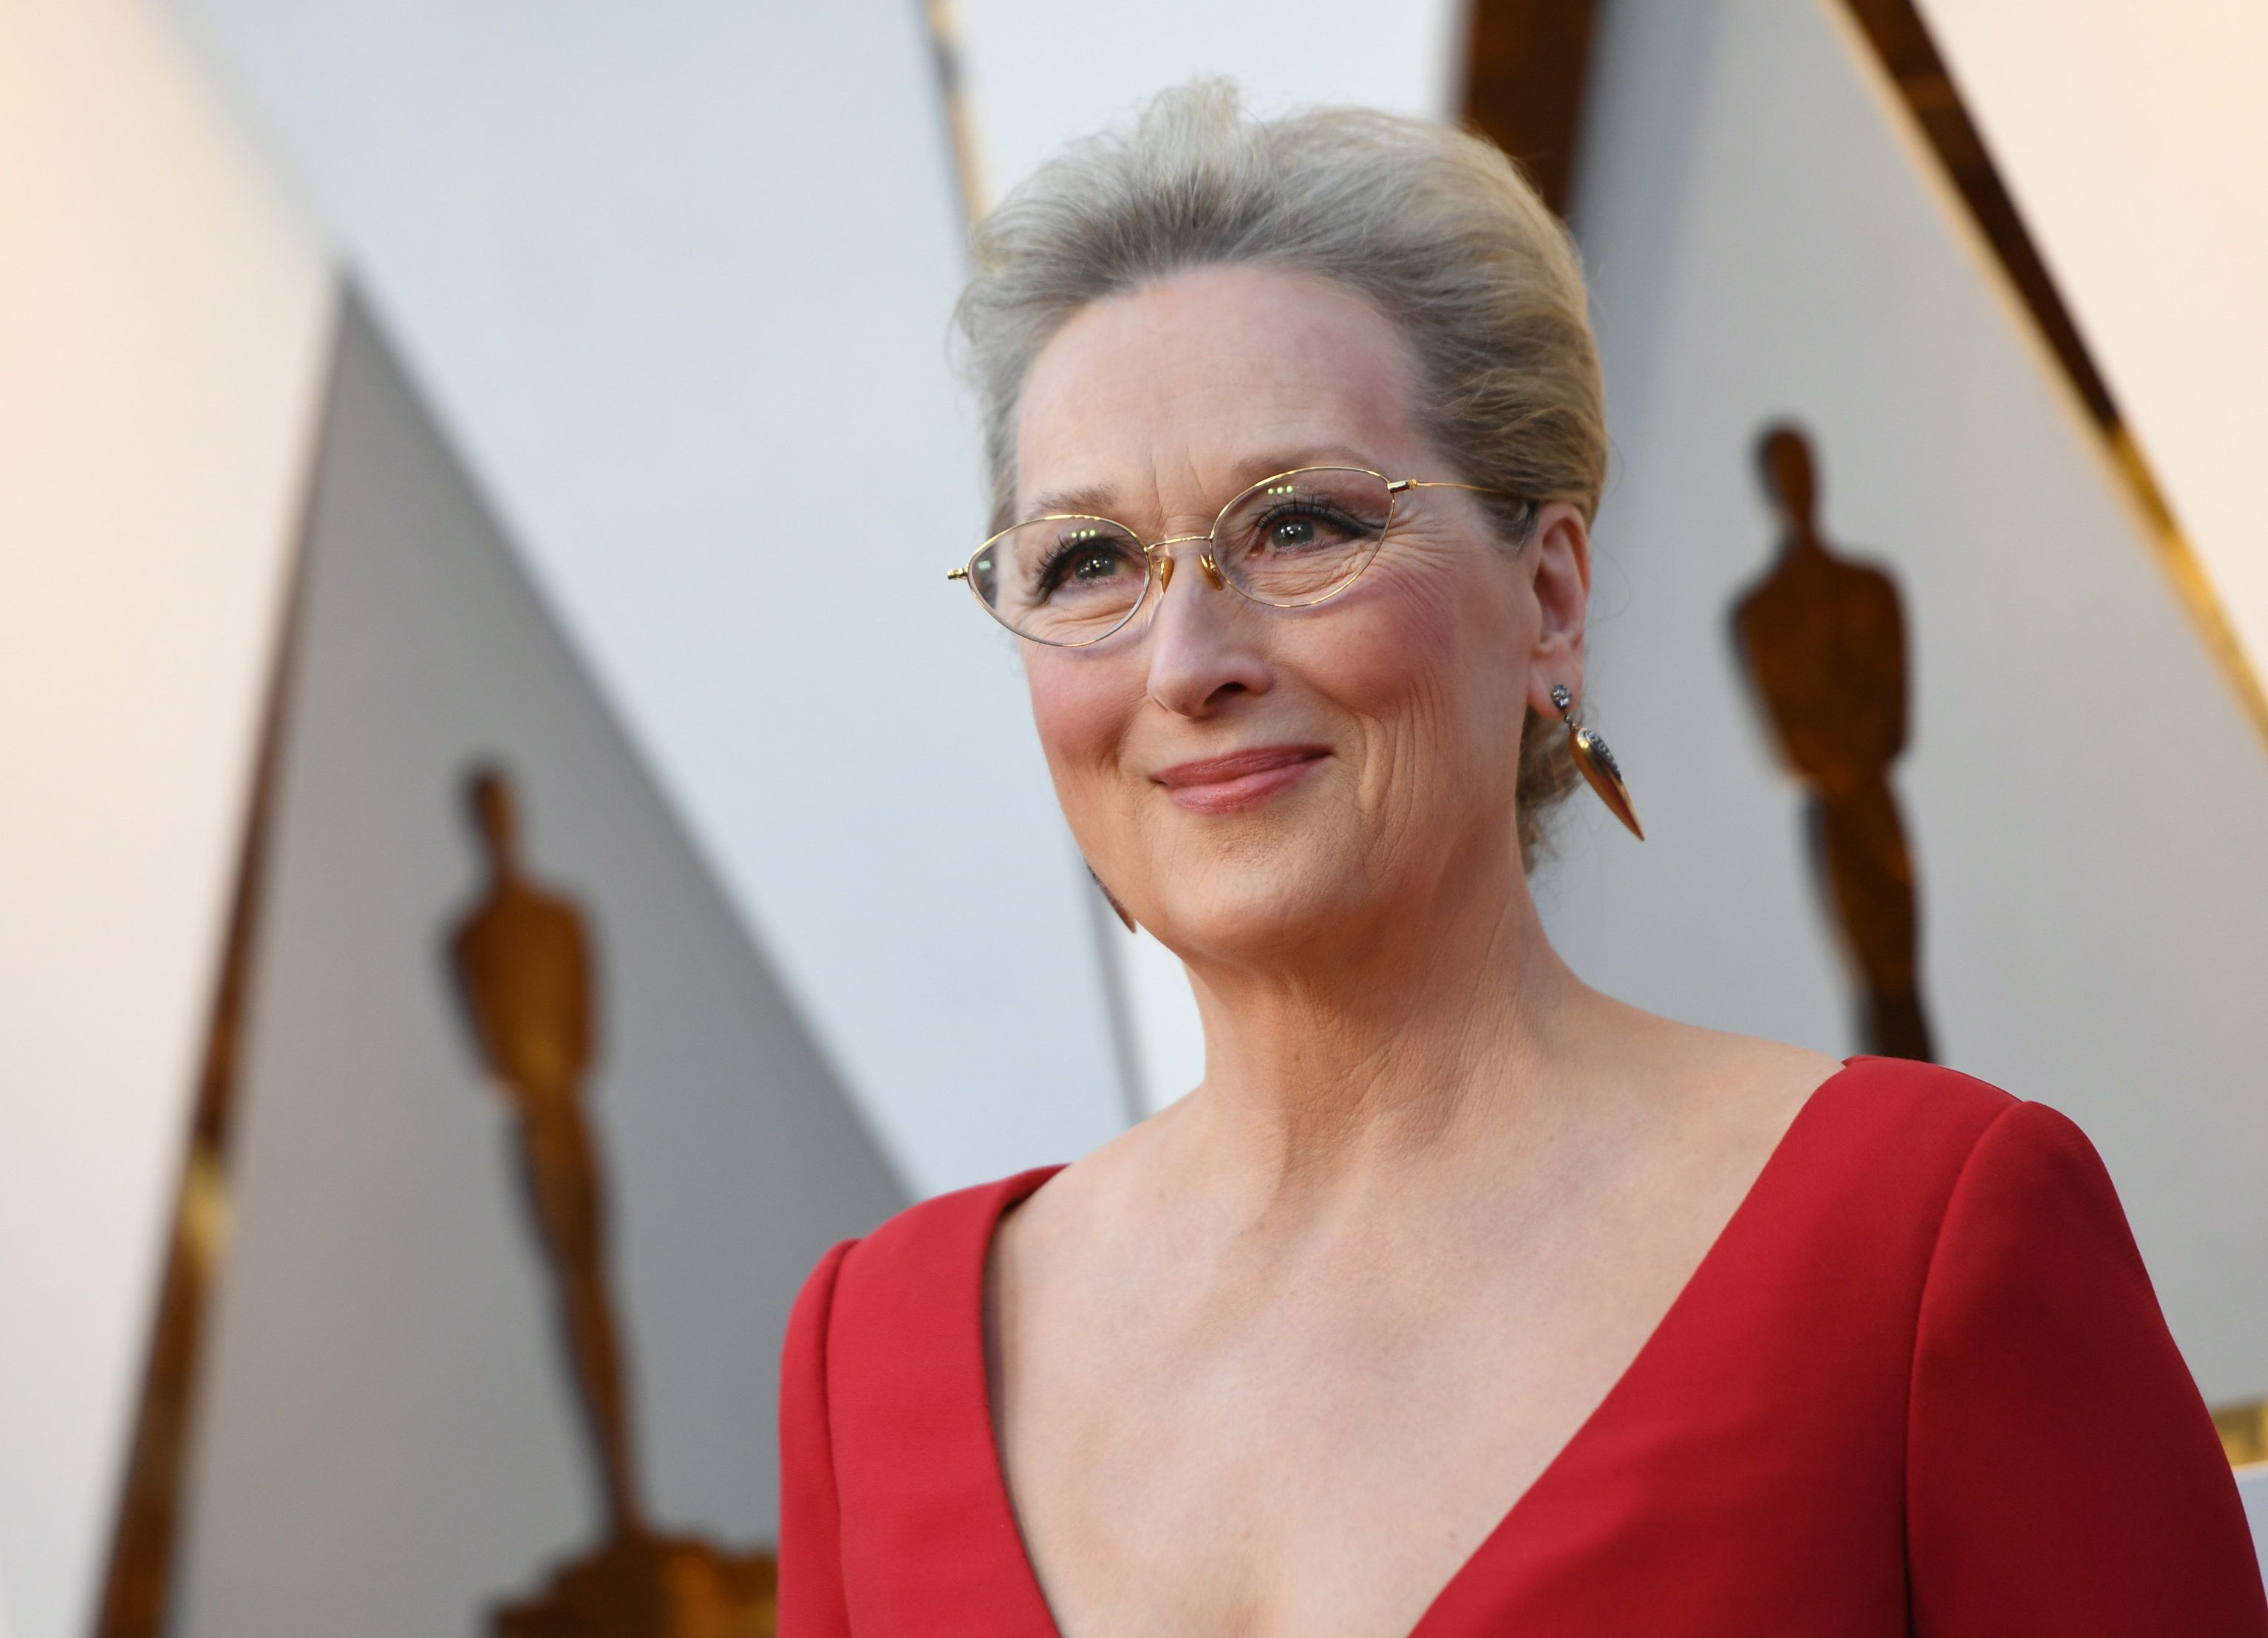 Actress Meryl Streep arrives for the 90th Annual Academy Awards on March 4, 2018, in Hollywood, California.  / AFP PHOTO / VALERIE MACON        (Photo credit should read VALERIE MACON/AFP/Getty Images)